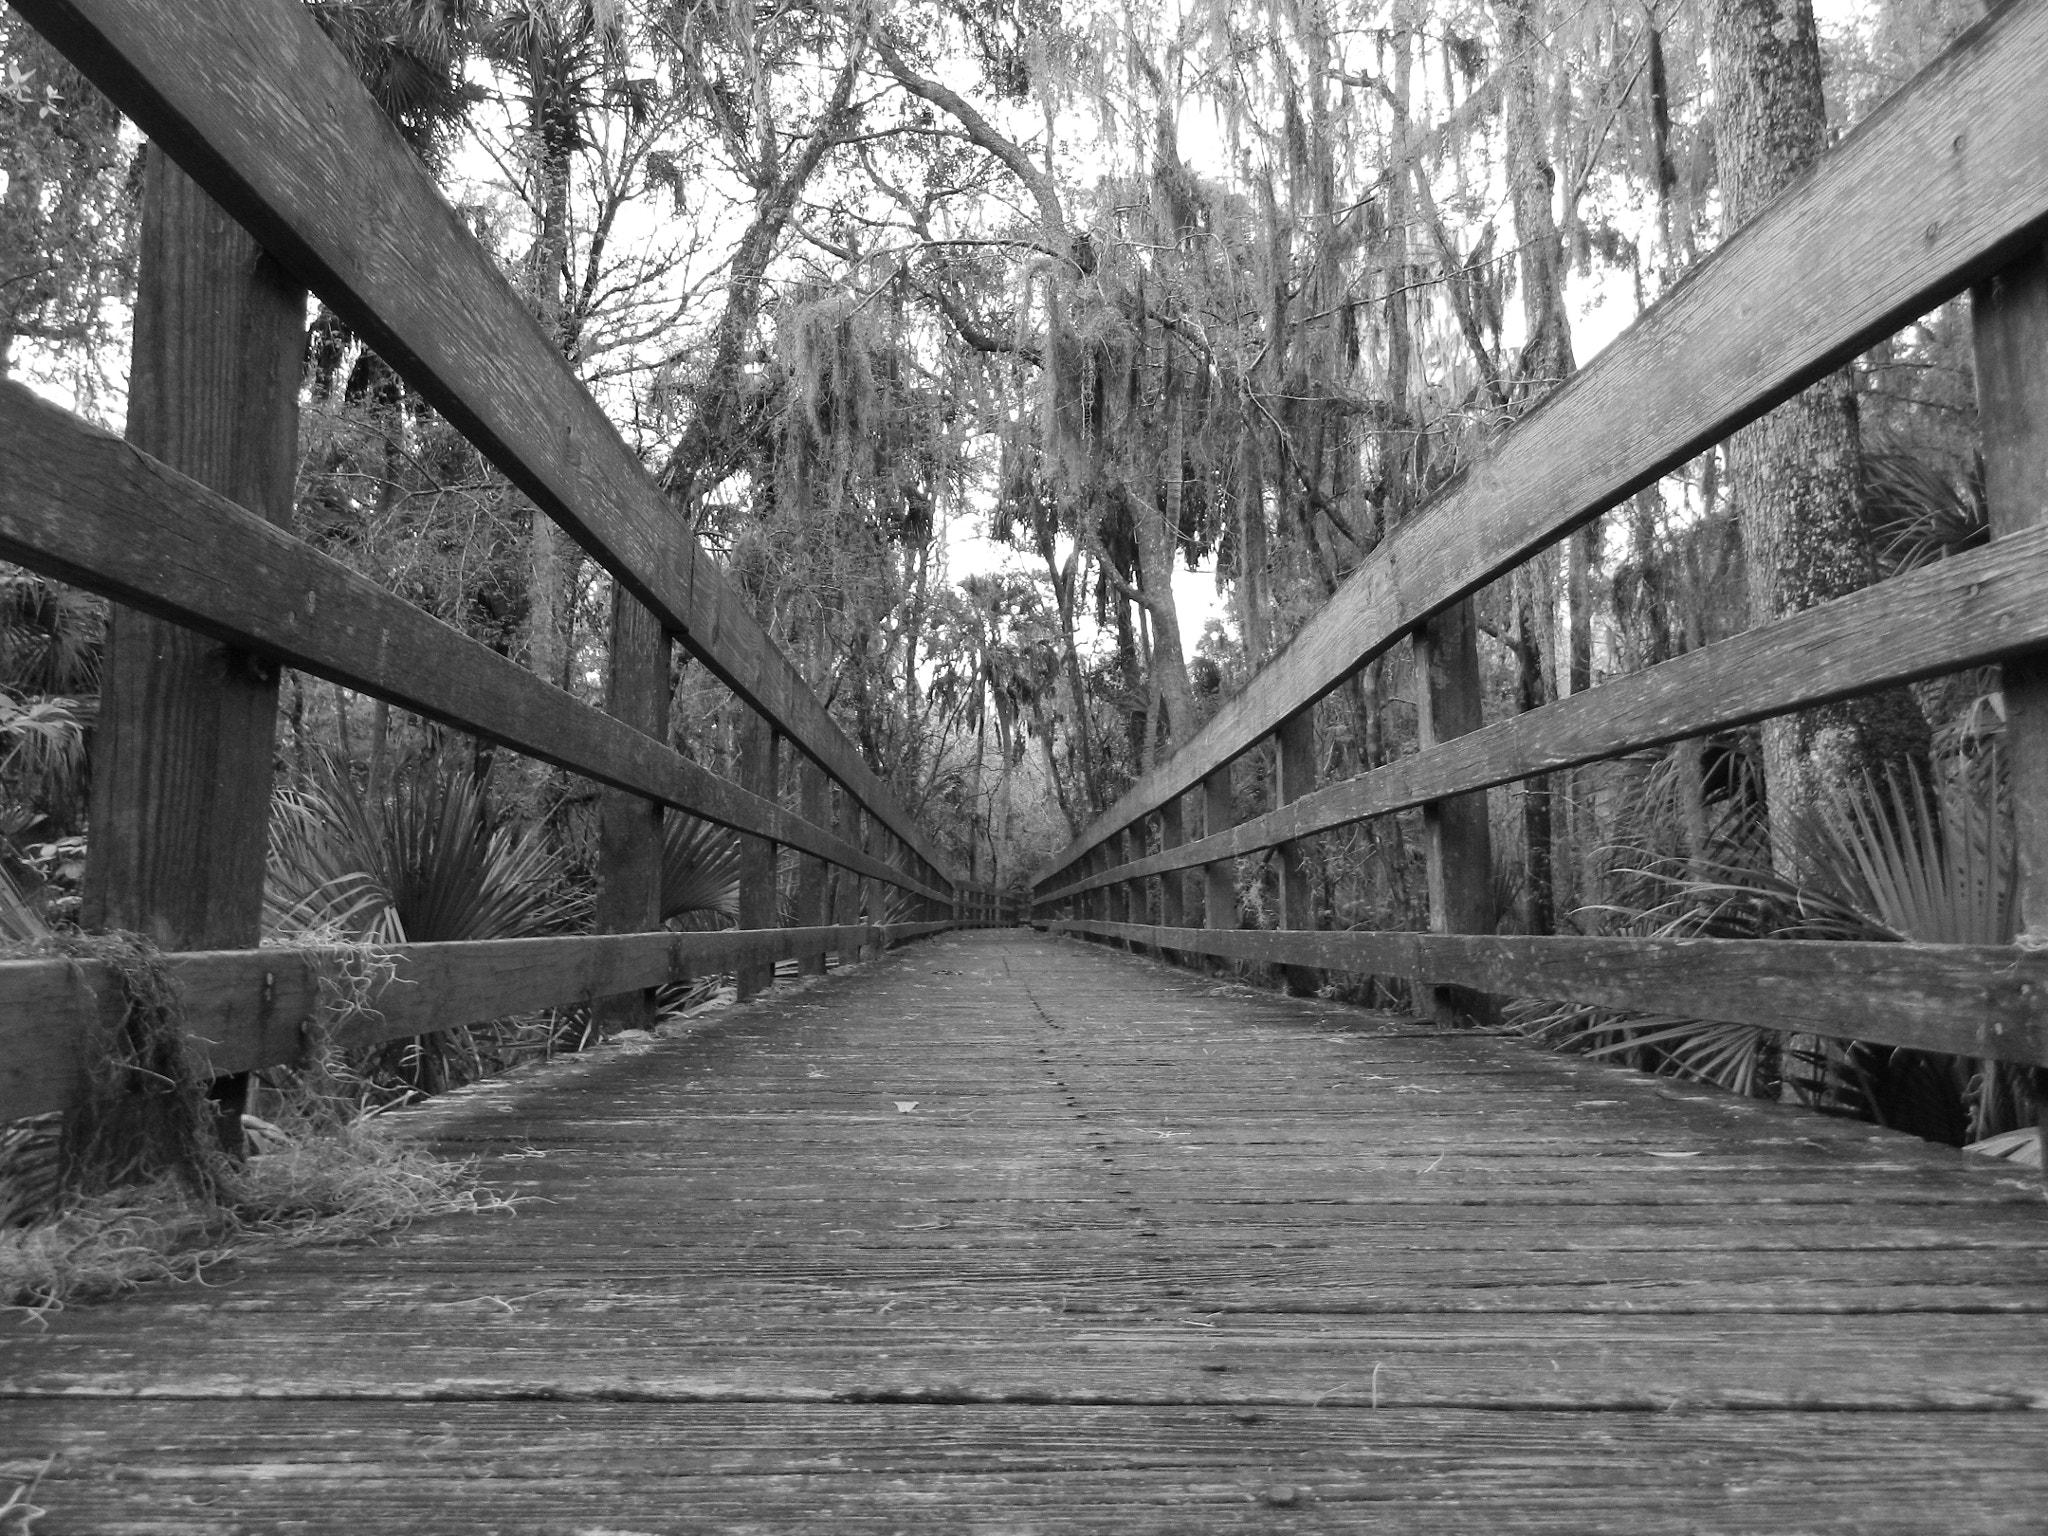 Photograph The path down the wooden bridge by Chloe Zentkovich on 500px